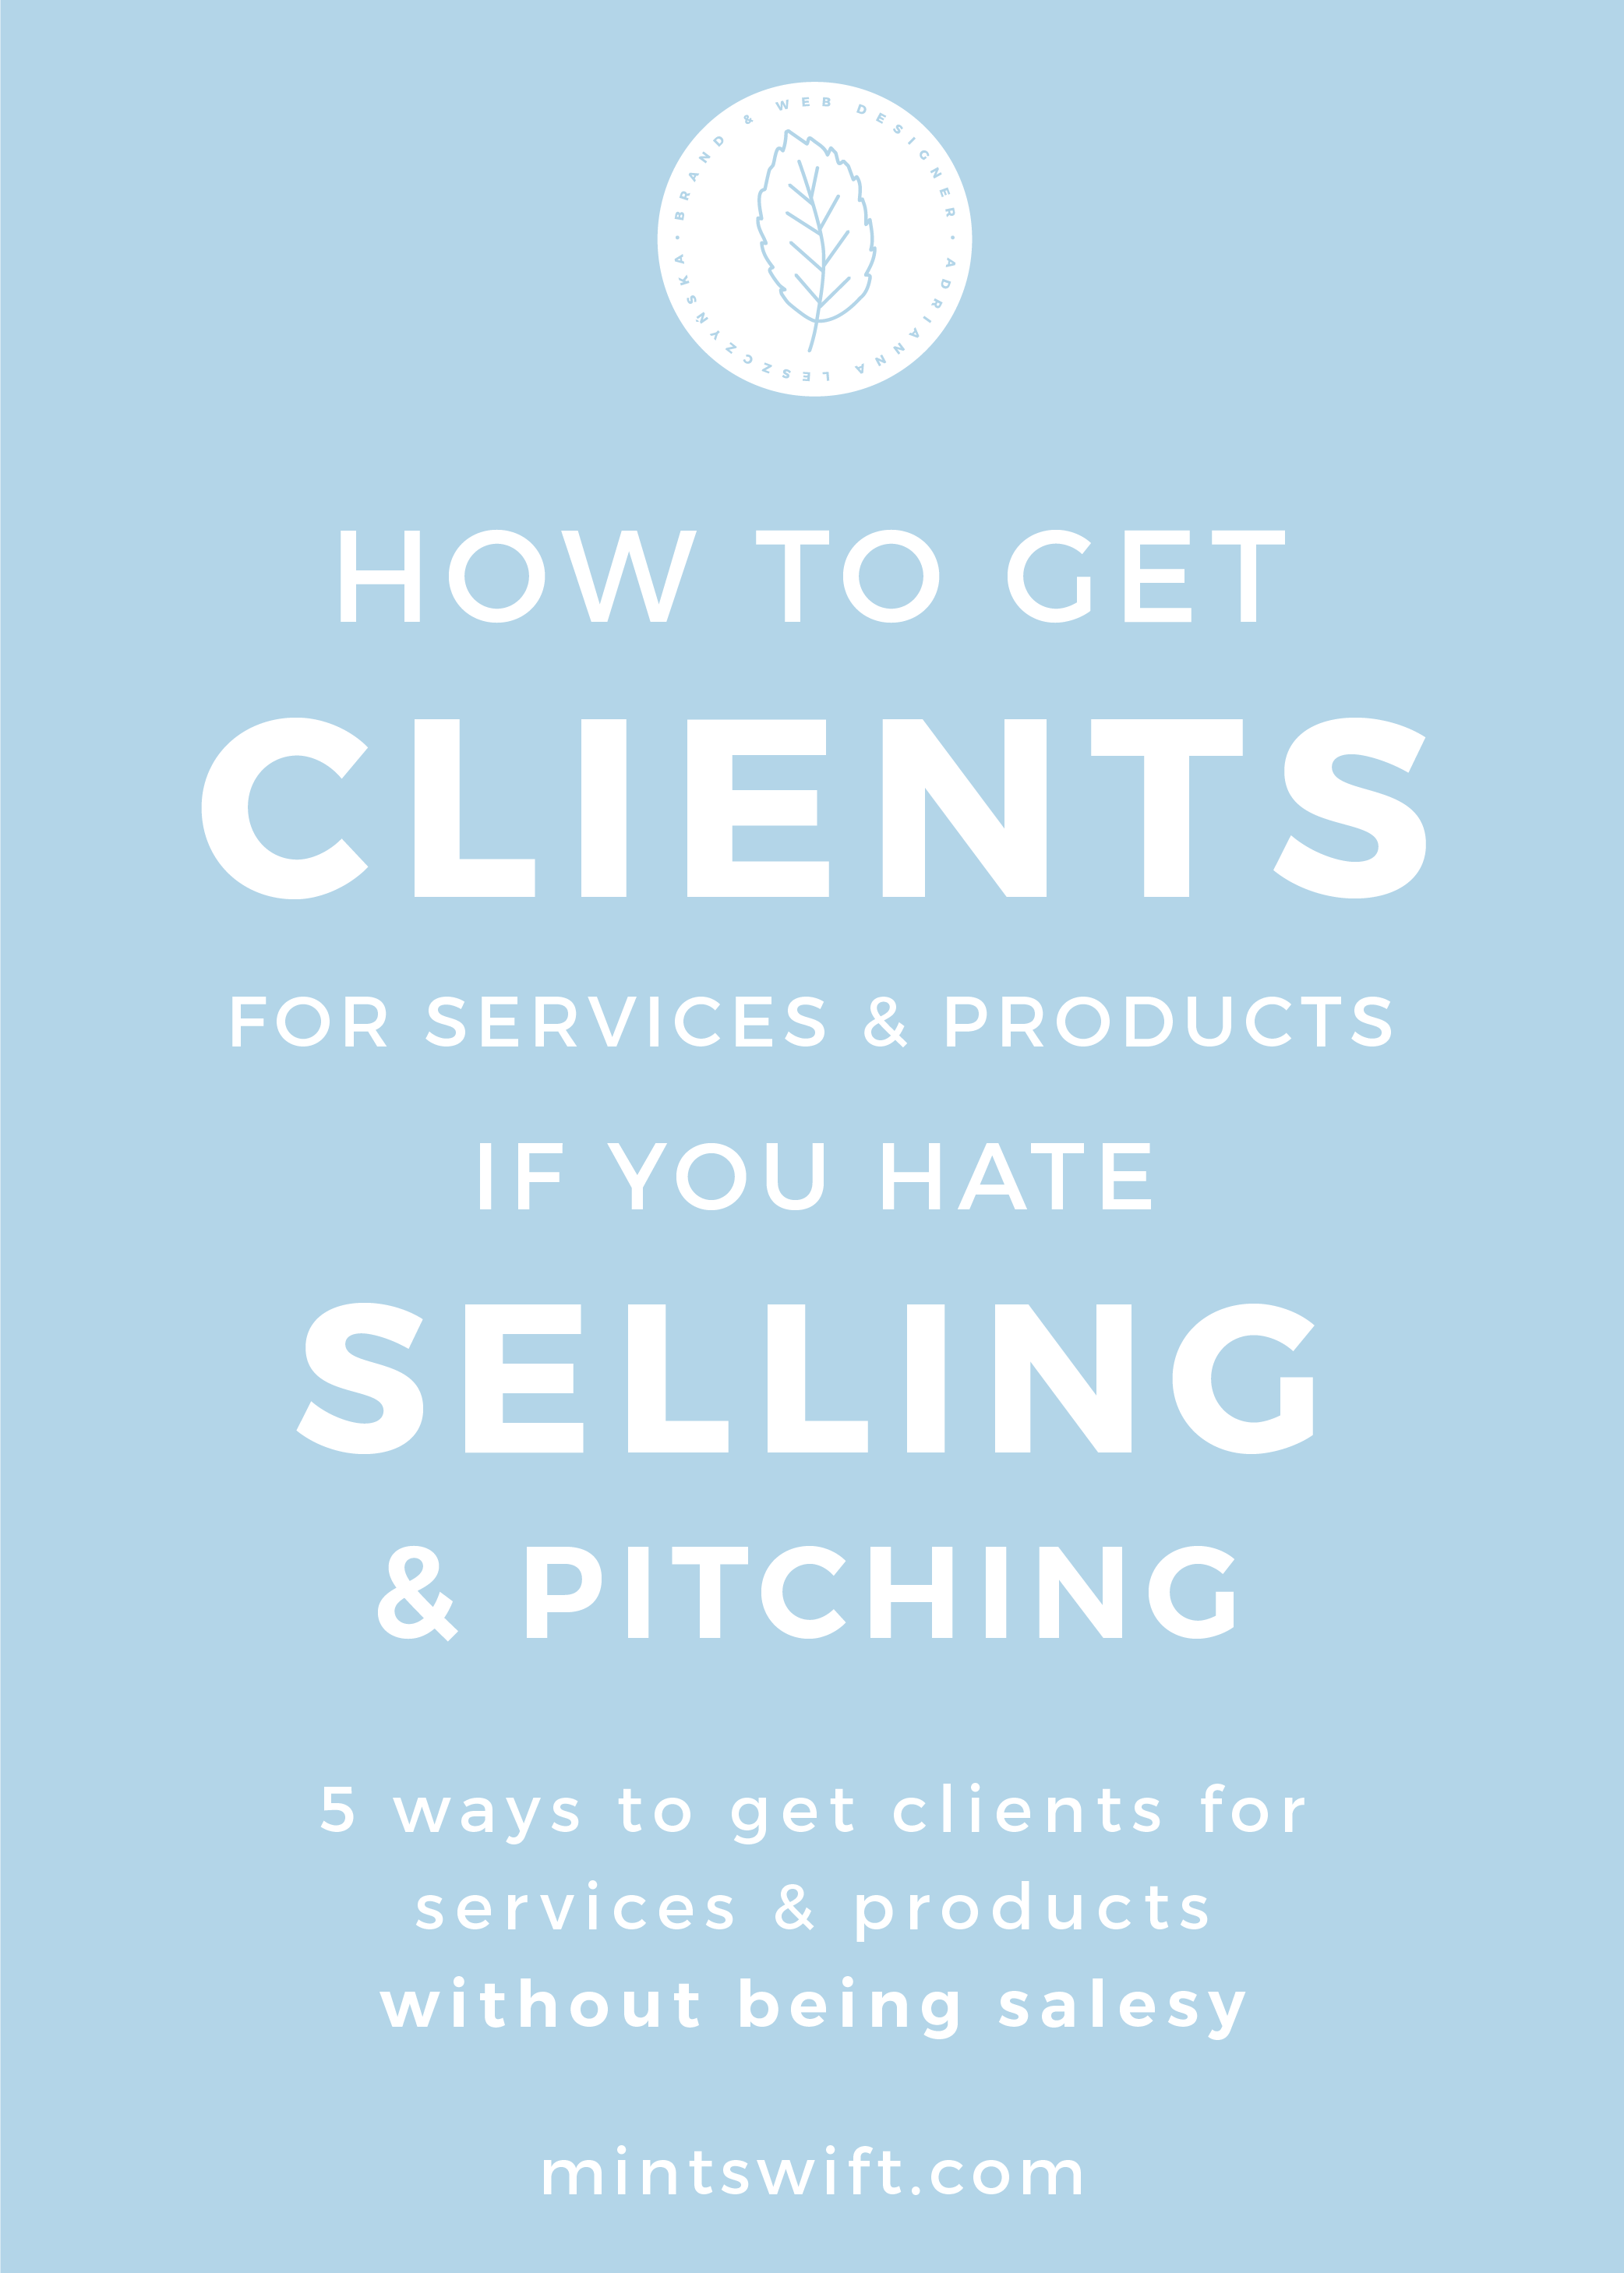 How to Get Clients For Services and Products if You Hate Selling and Pitching. 5 Ways to Get Clients for Services and Products Without Being Salesy - MintSwift